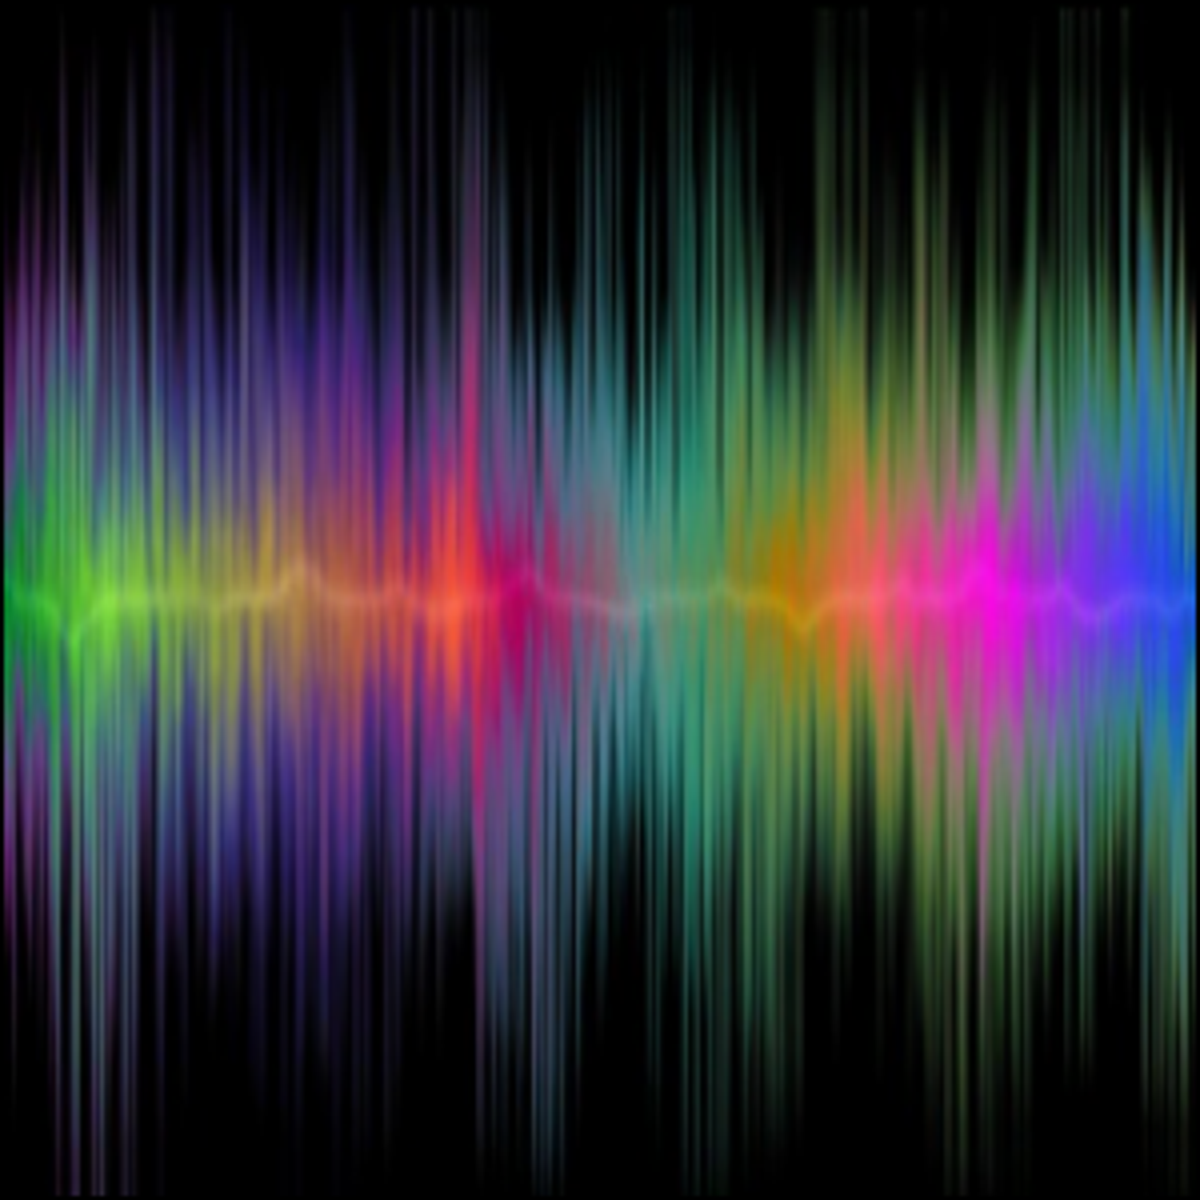 A sample of a sound wave.